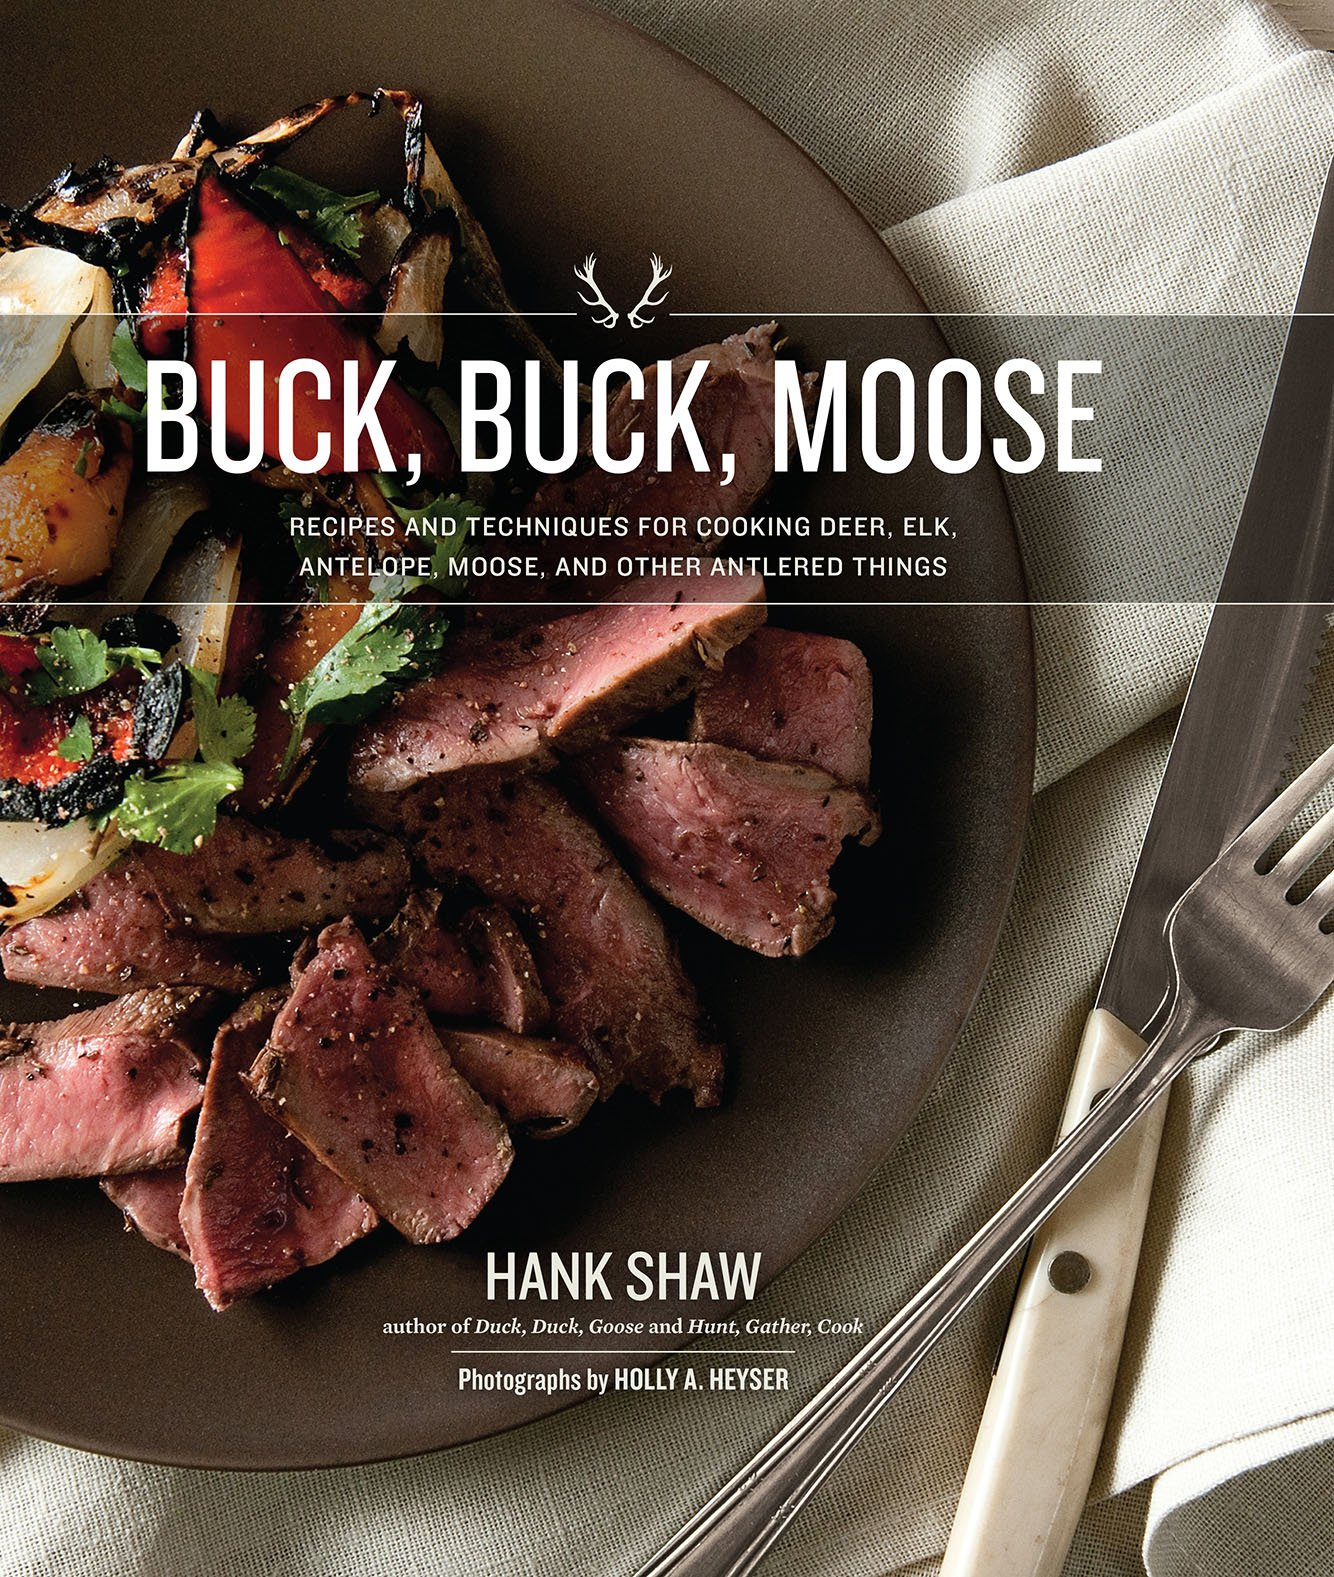 Buck, Buck, Moose: Recipes and Techniques for Cooking Deer, Elk, Moose, Antelope and Other Antlered Things by H H Books